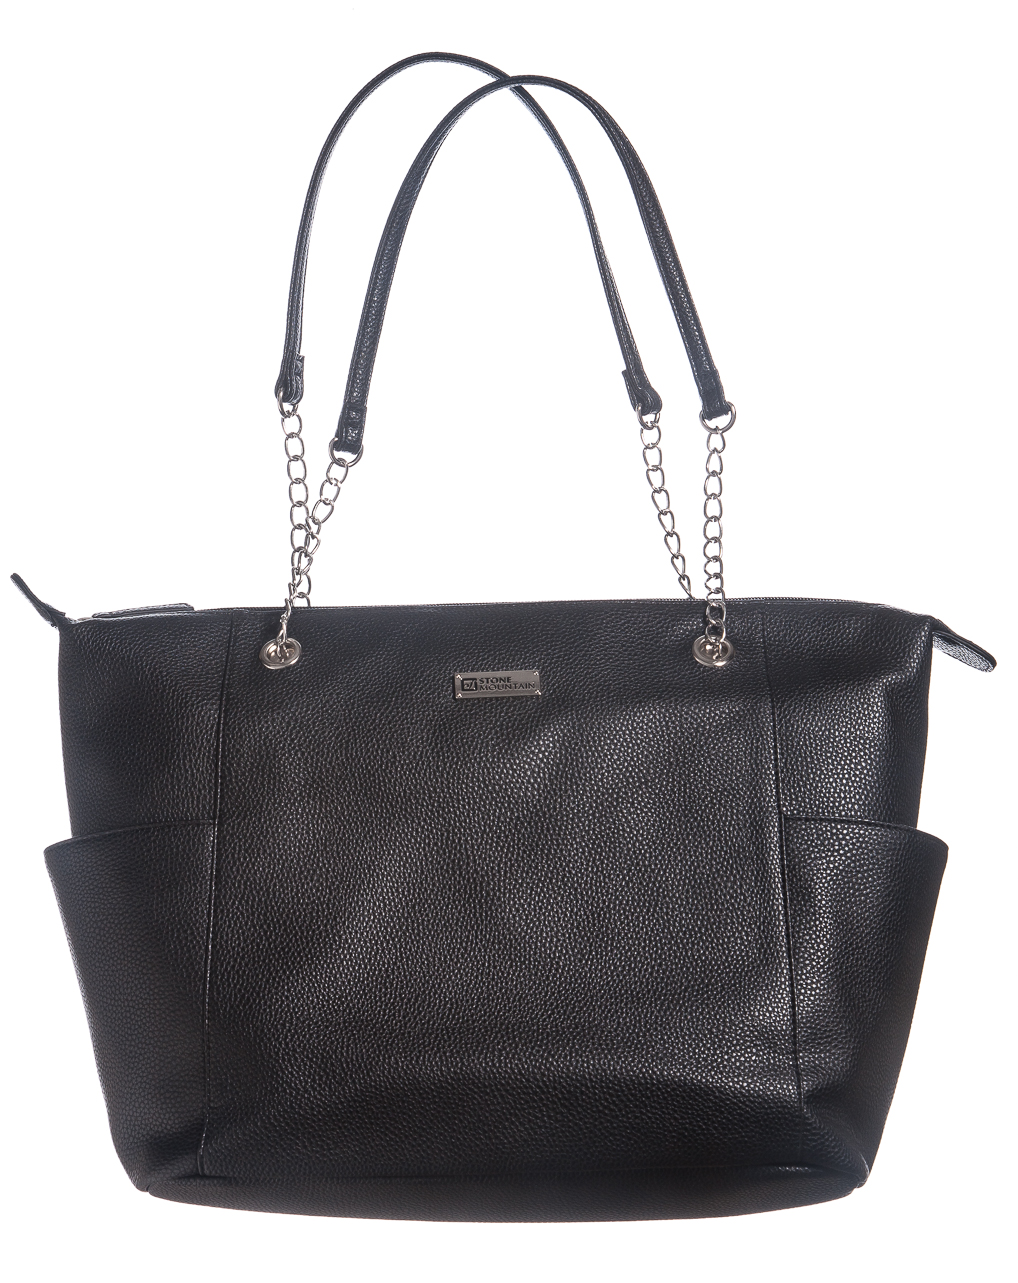 Talia Leather Tote w/ Chain and Phone Charger